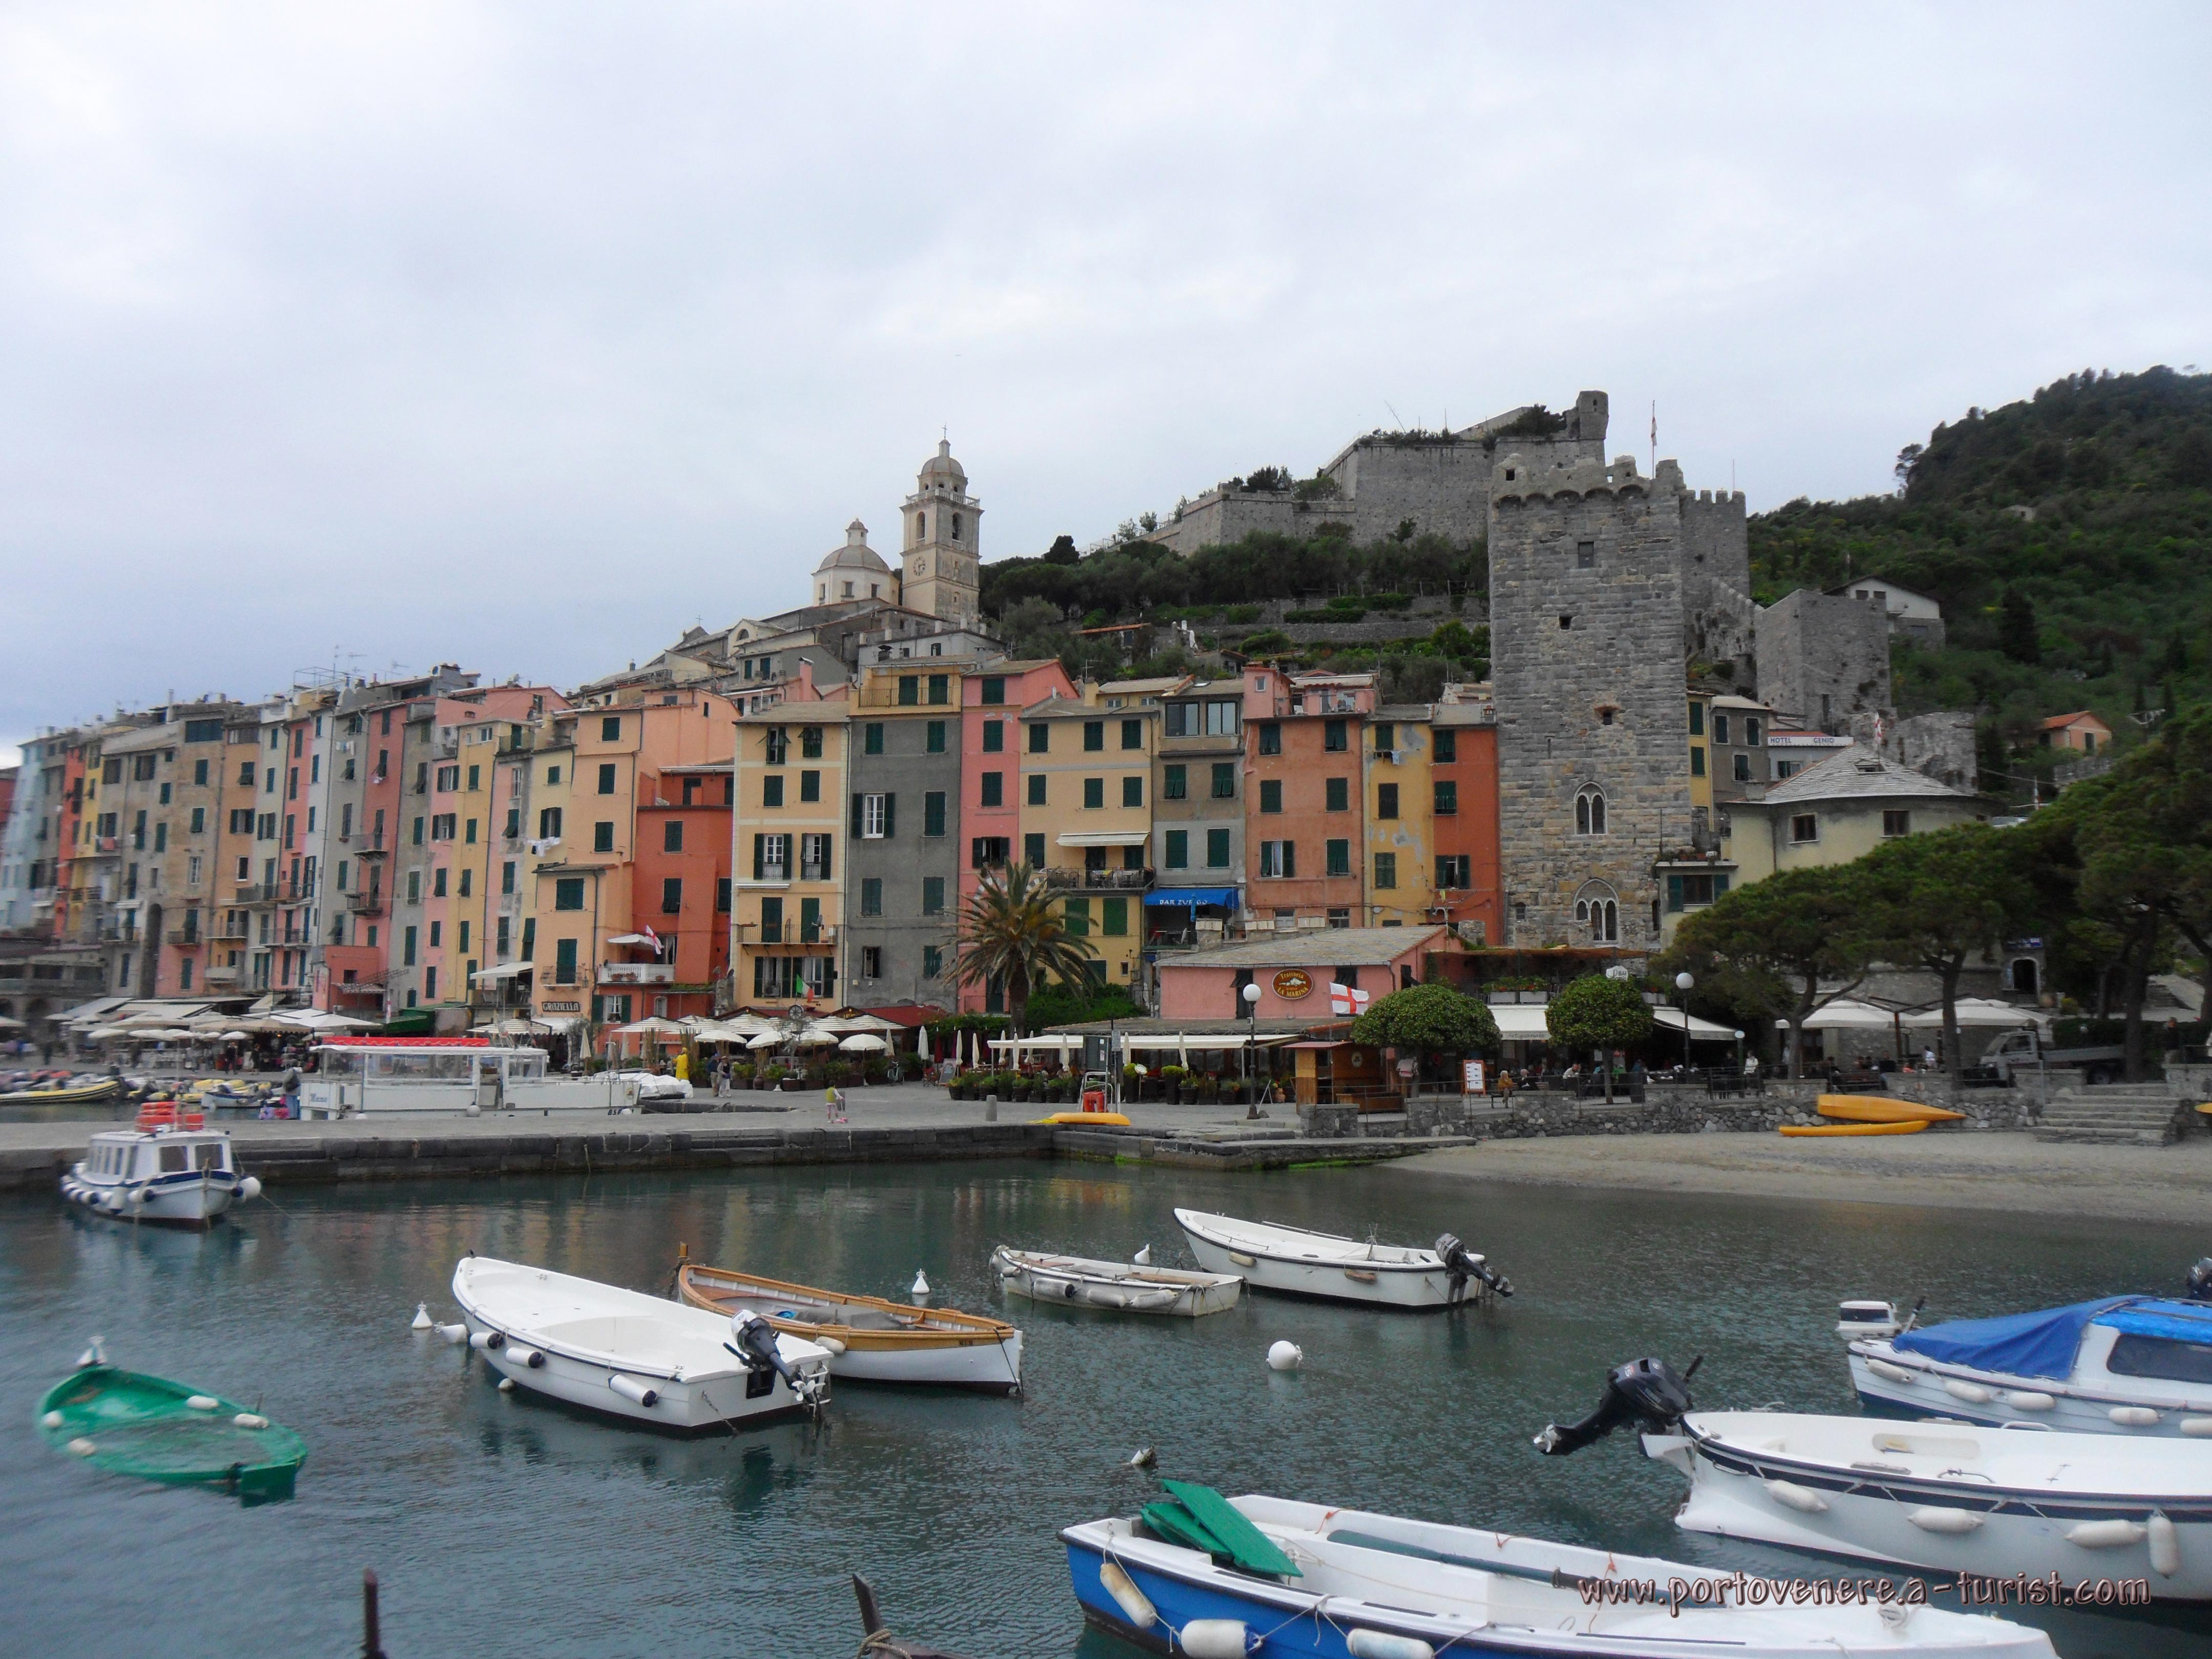 Portovenere - View of the town and castle Doria<br>4320x3240, 1.39 MB